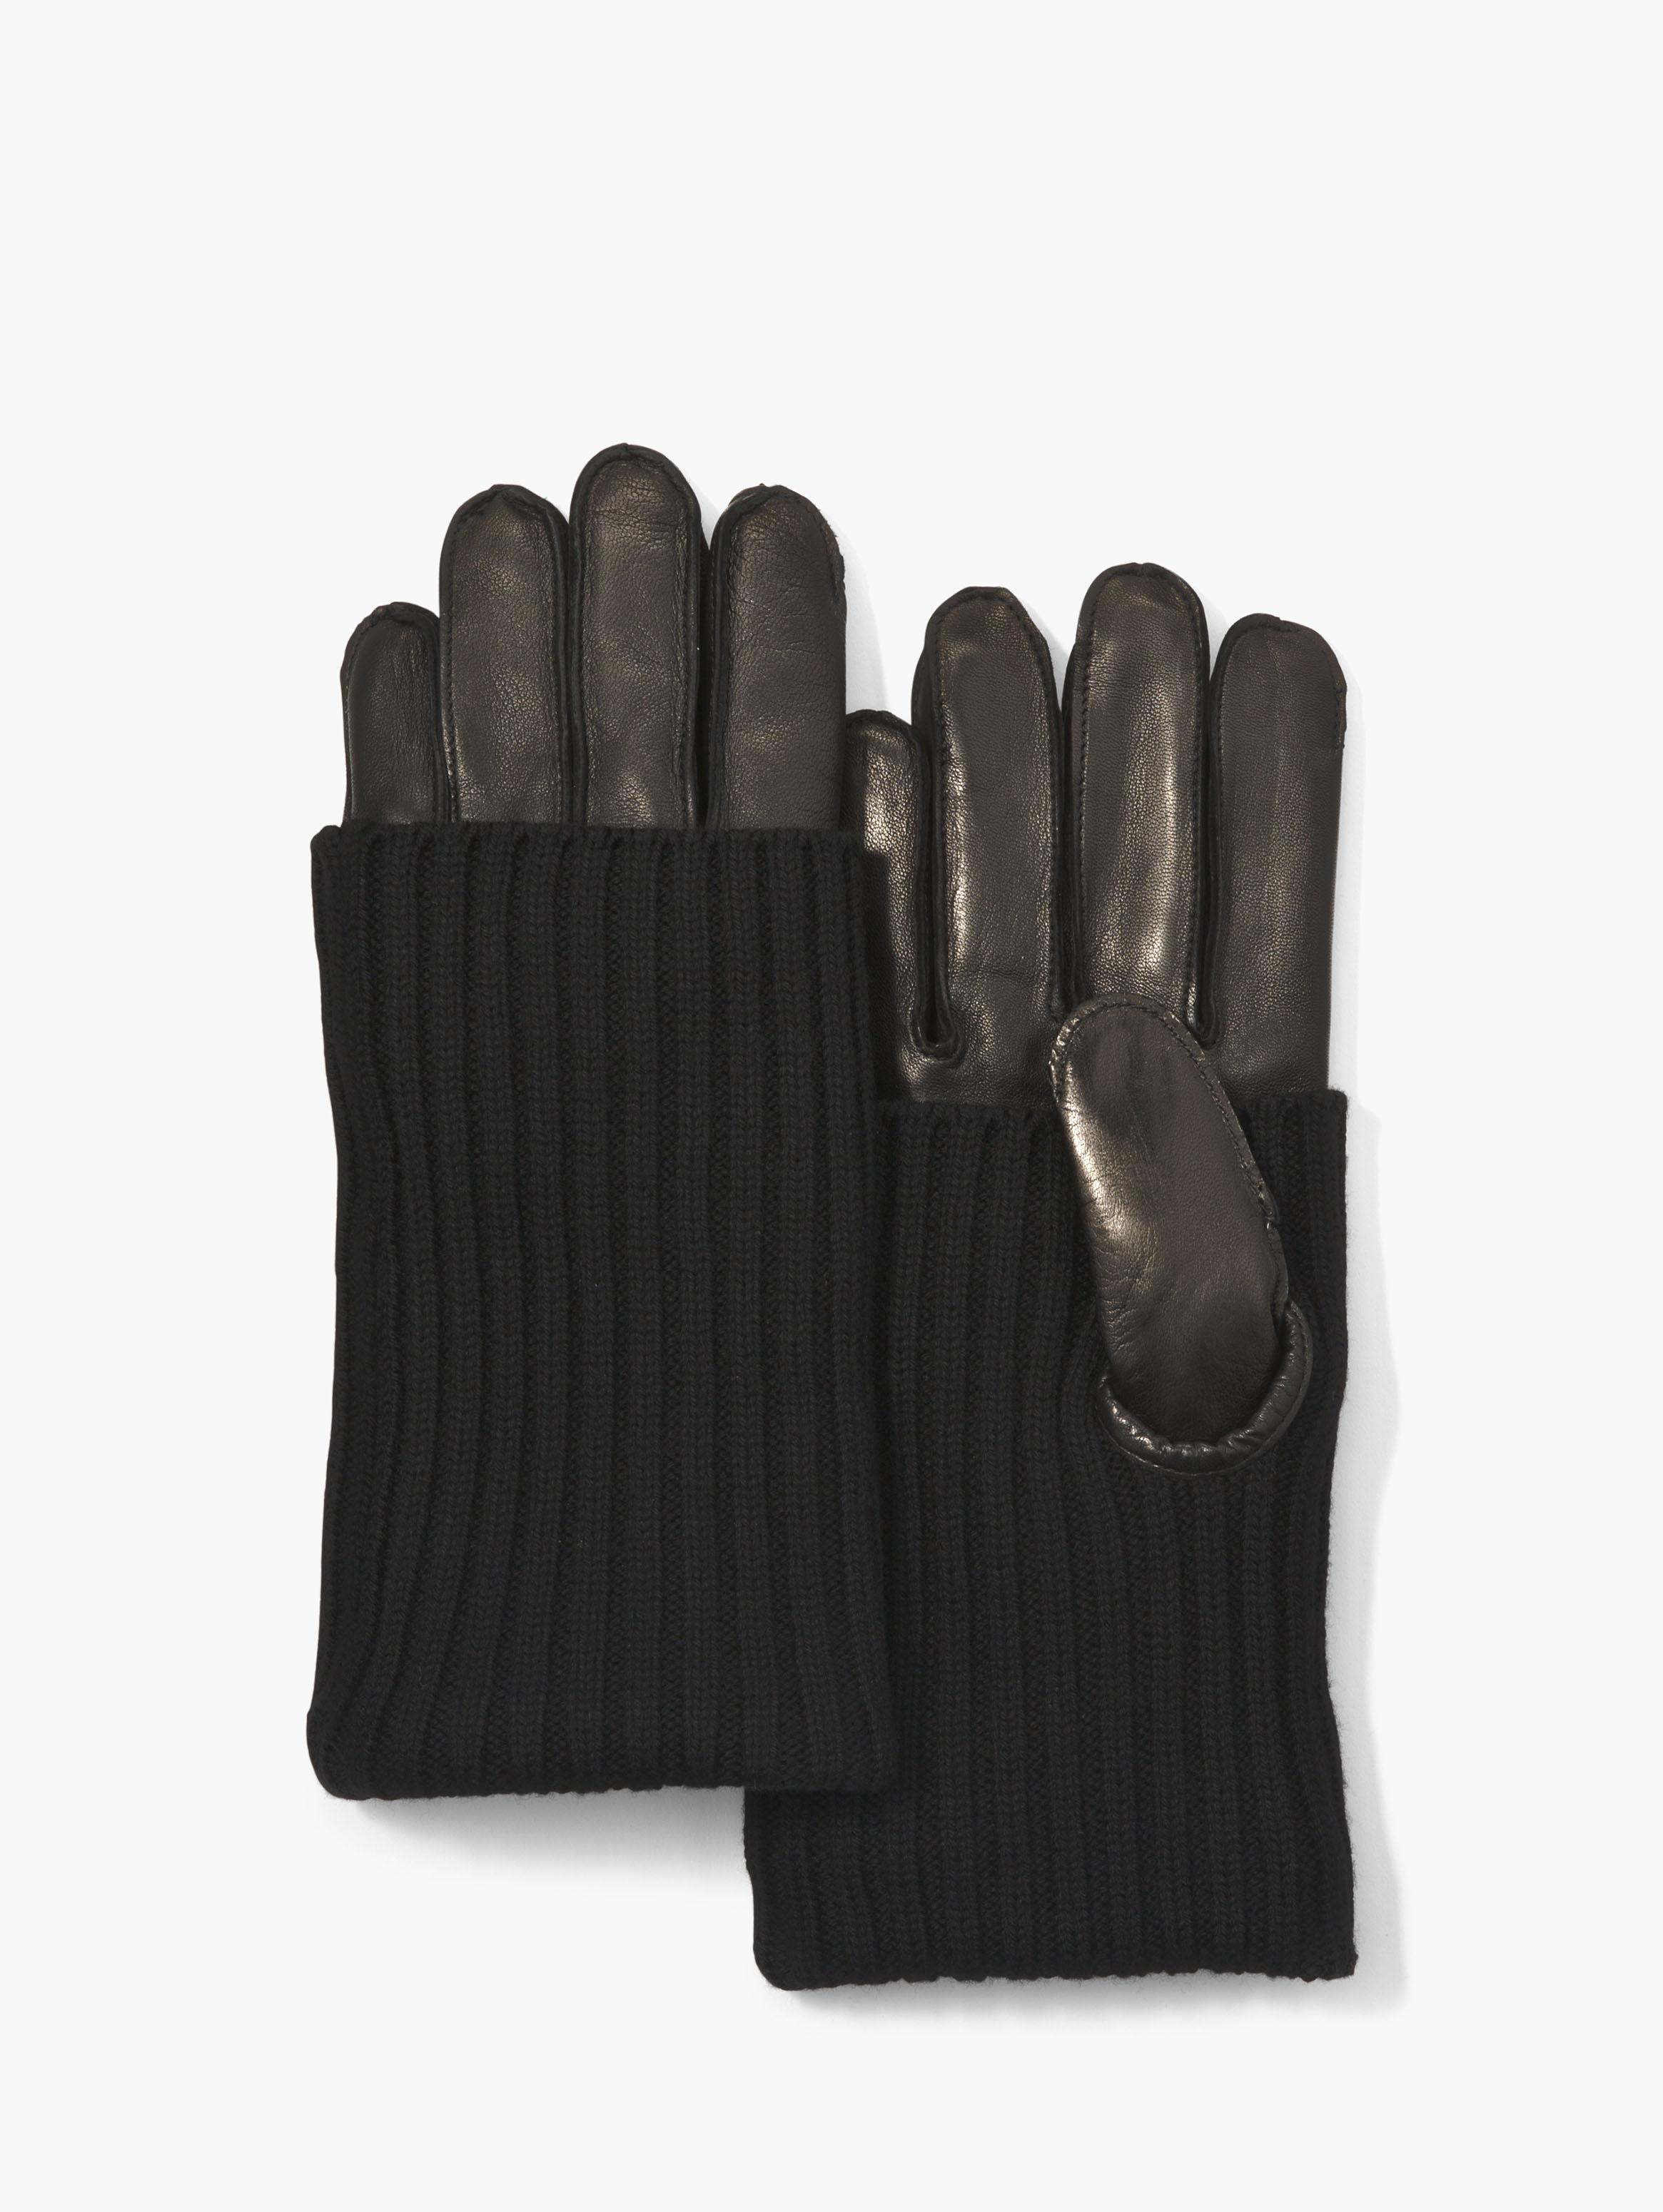 Knit Covered Leather Gloves